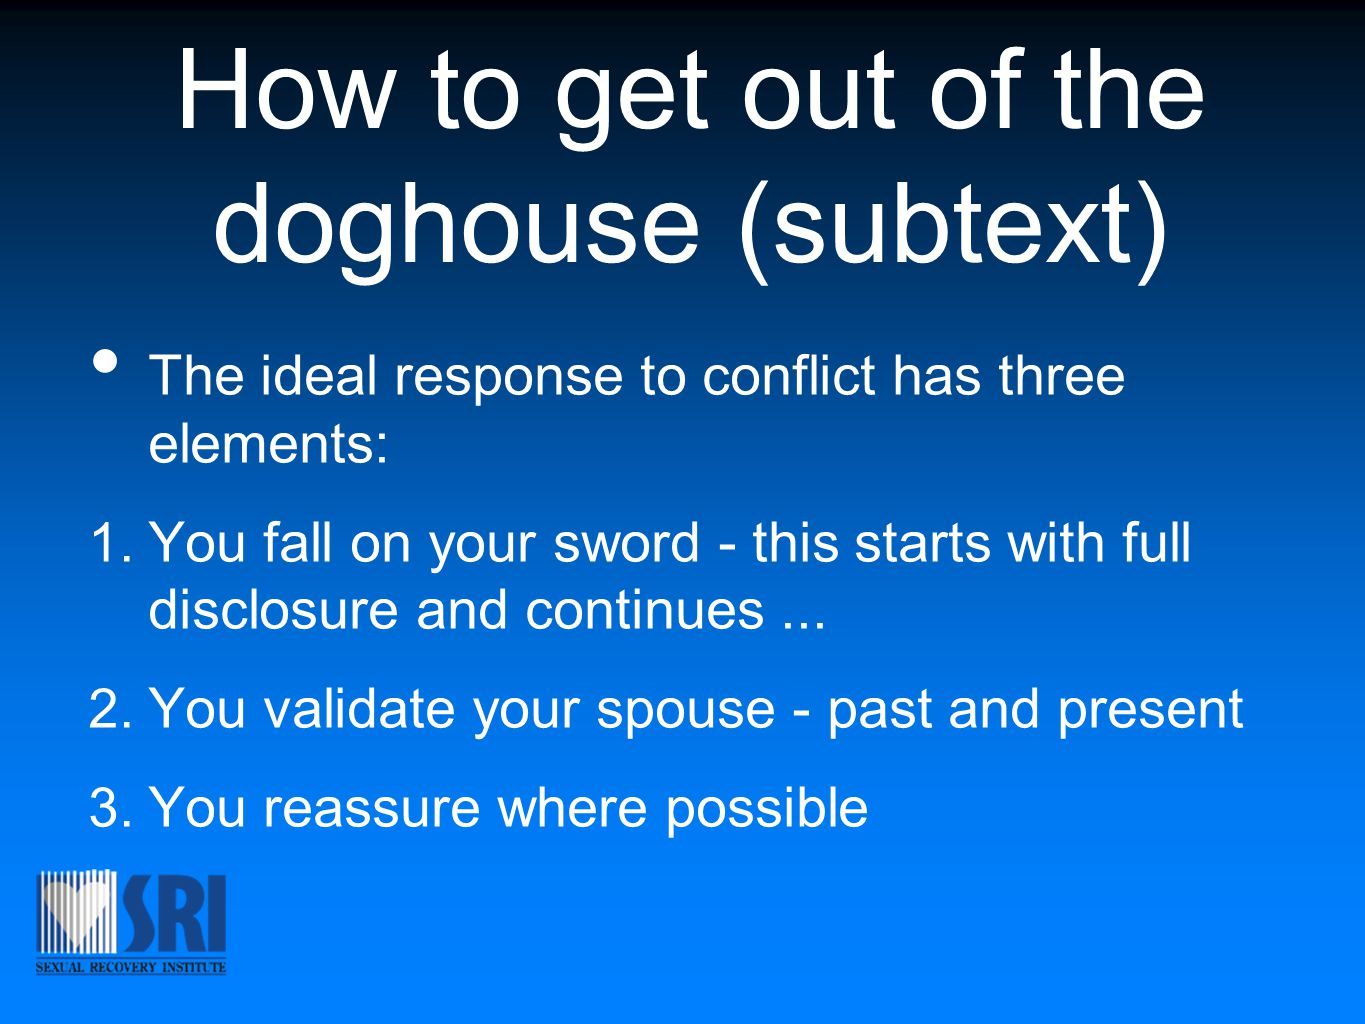 How to get out of the doghouse (subtext) The ideal response to conflict has three elements: 1. You fall on your sword - this starts with full disclosu